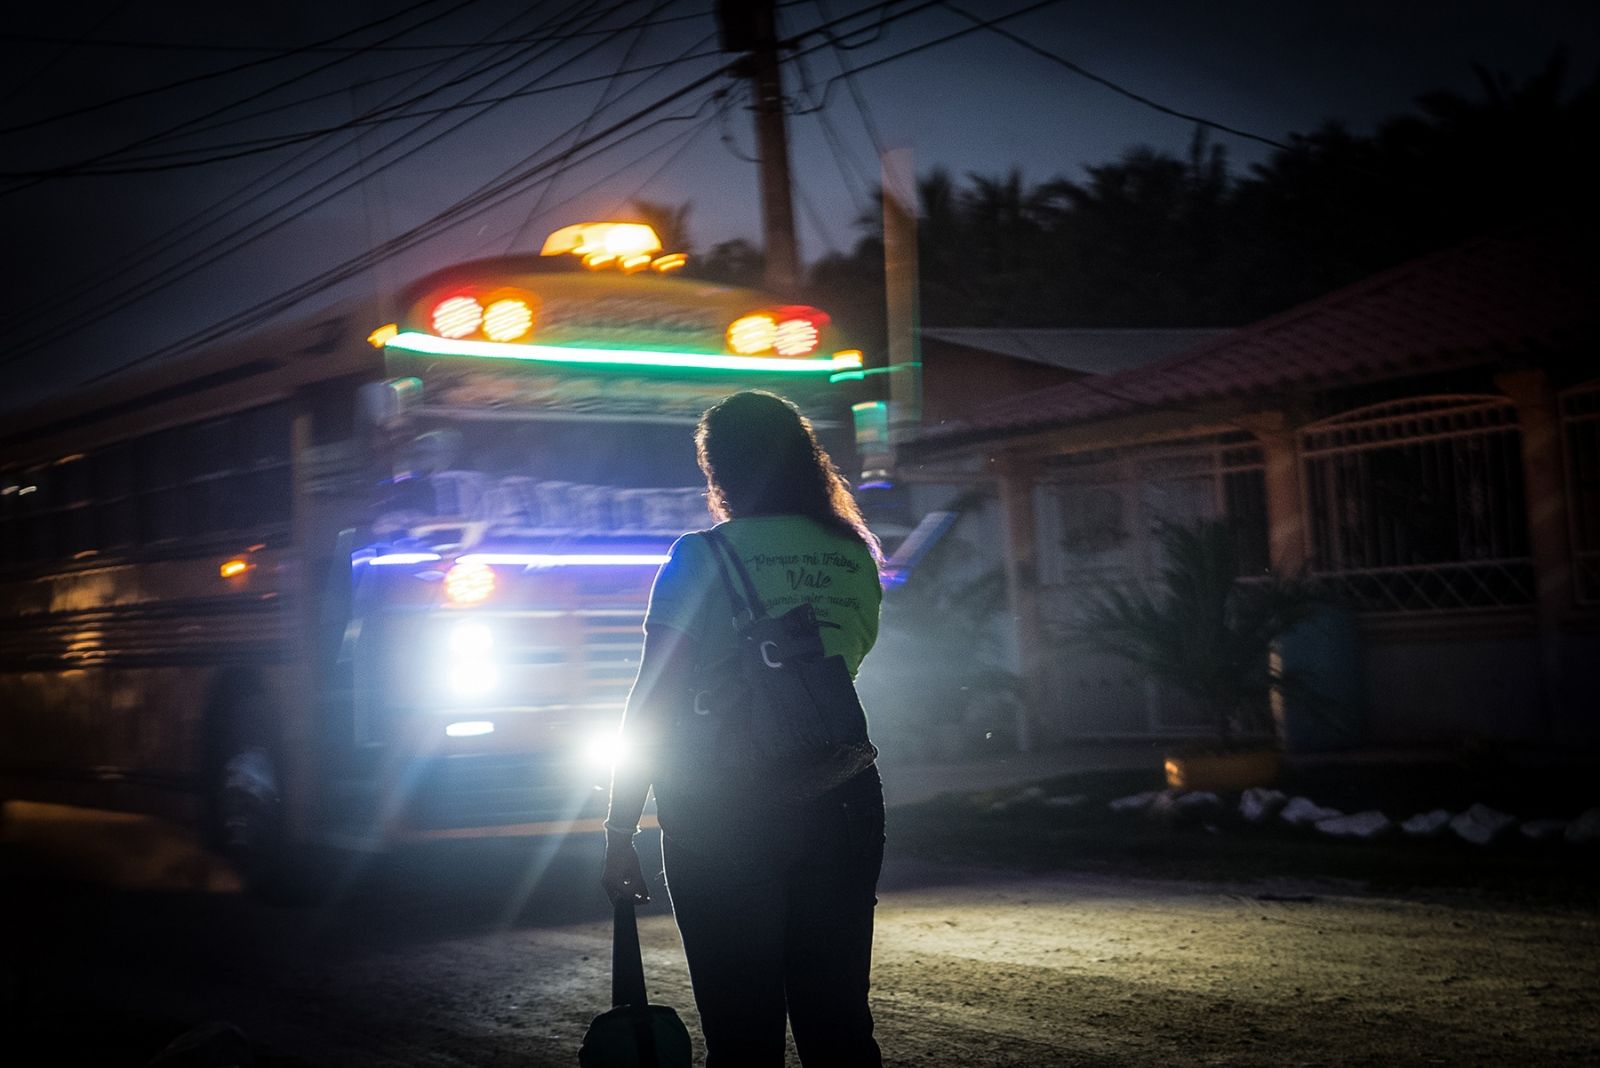 Before dawn, Gómez waits for the company bus near her home. Even when on strike, she shows up to work, fearing she will be replaced if absent. Her daily earnings depend on the fruit she and her coworkers collect, but this number rarely exceeds 350 lempiras, or 14 dollars.